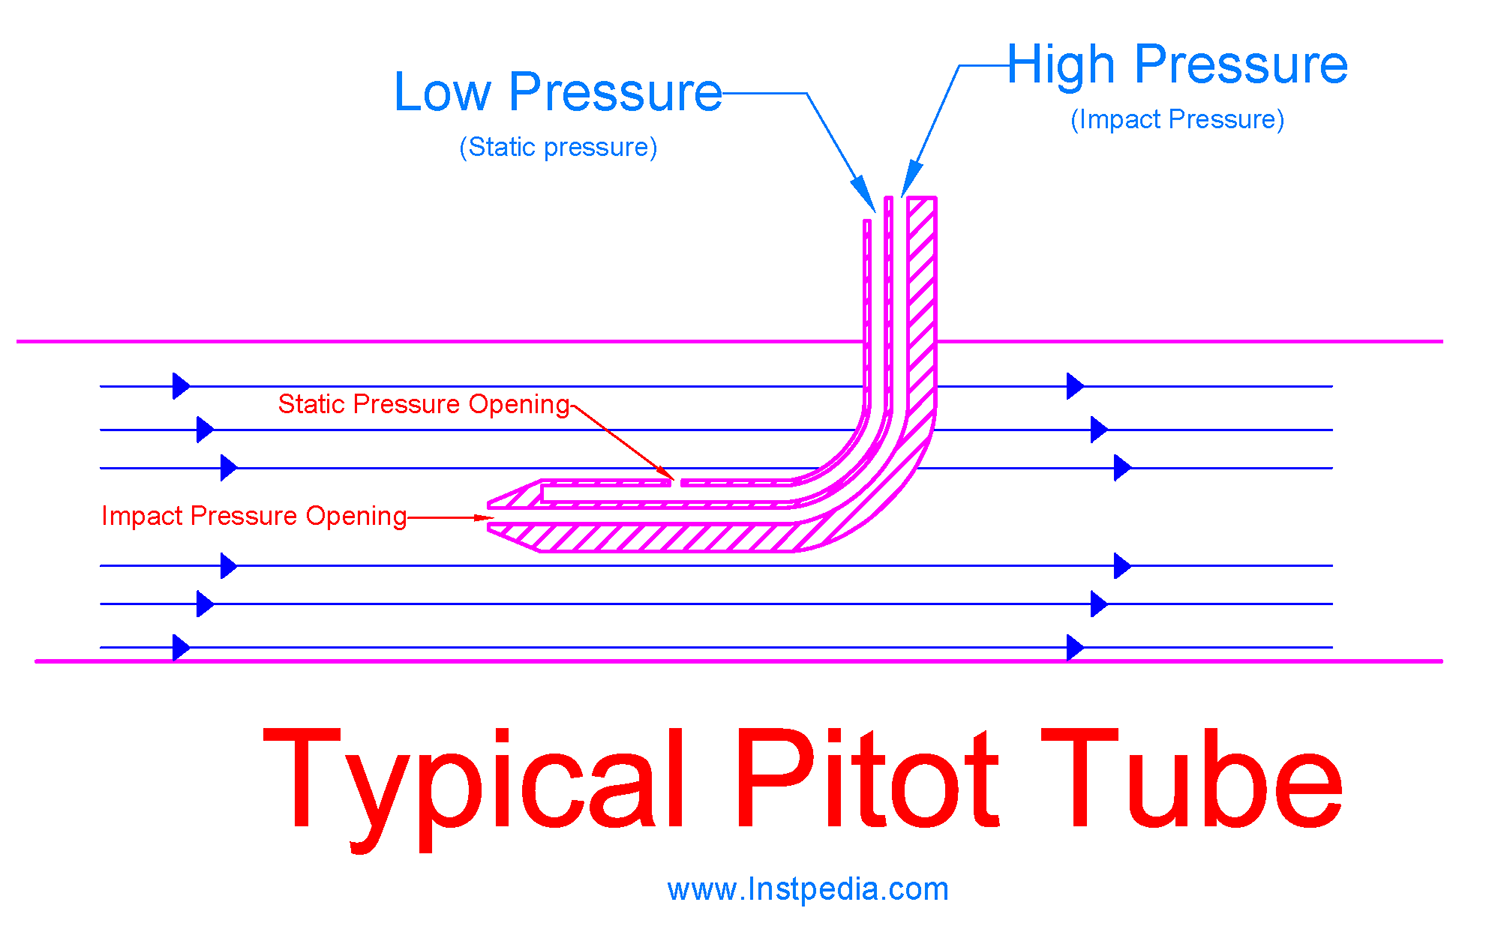 Typical Pitot Tube